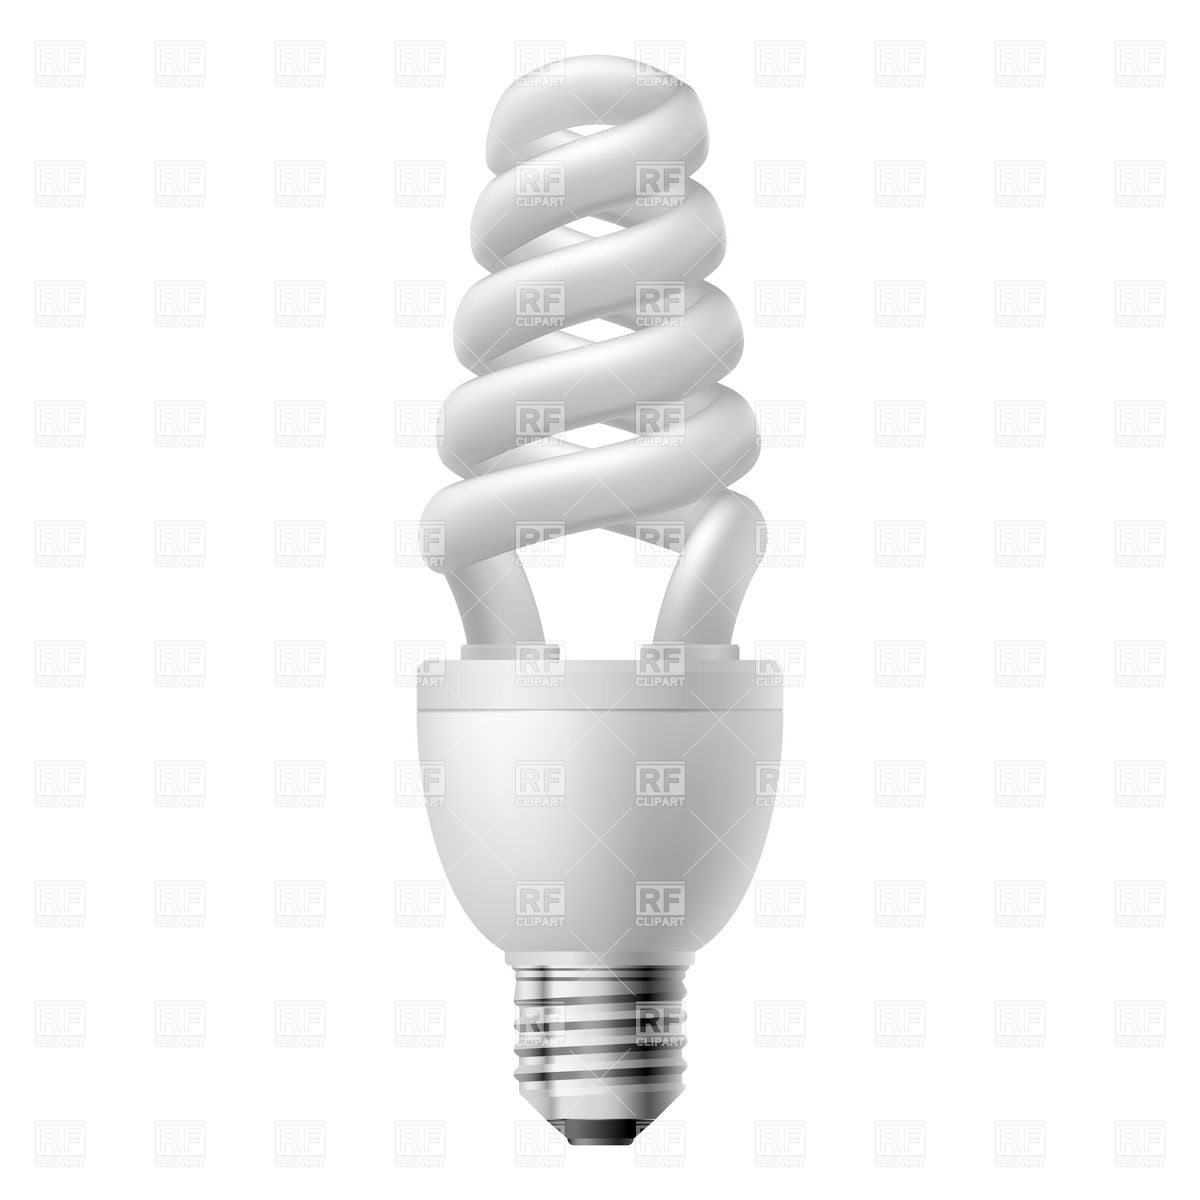 1200x1200 Cone Energy Saving Compact Fluorescent Light Bulb Vector Image